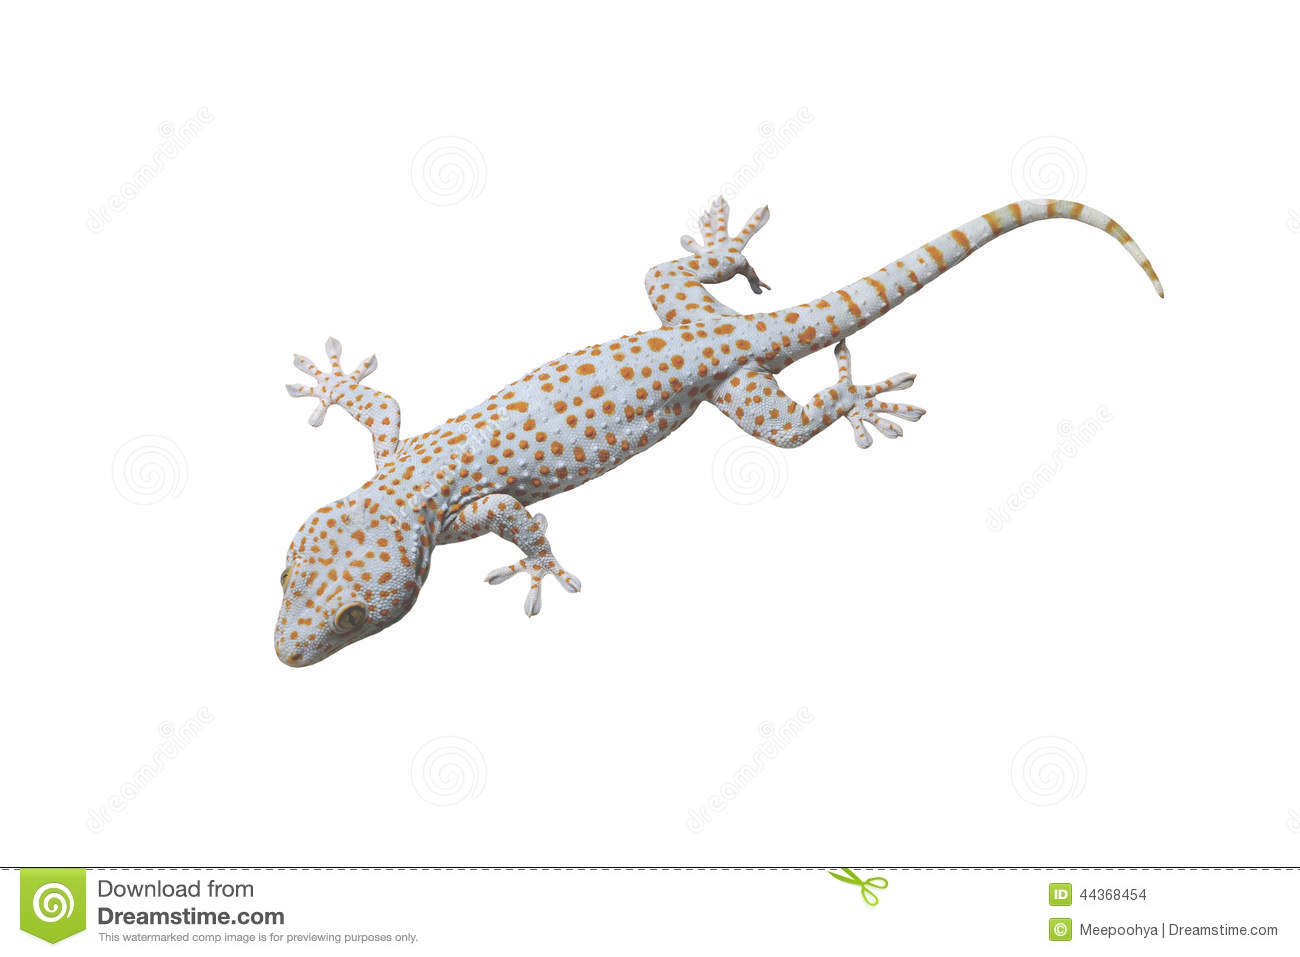 Tokay Gecko isolated.